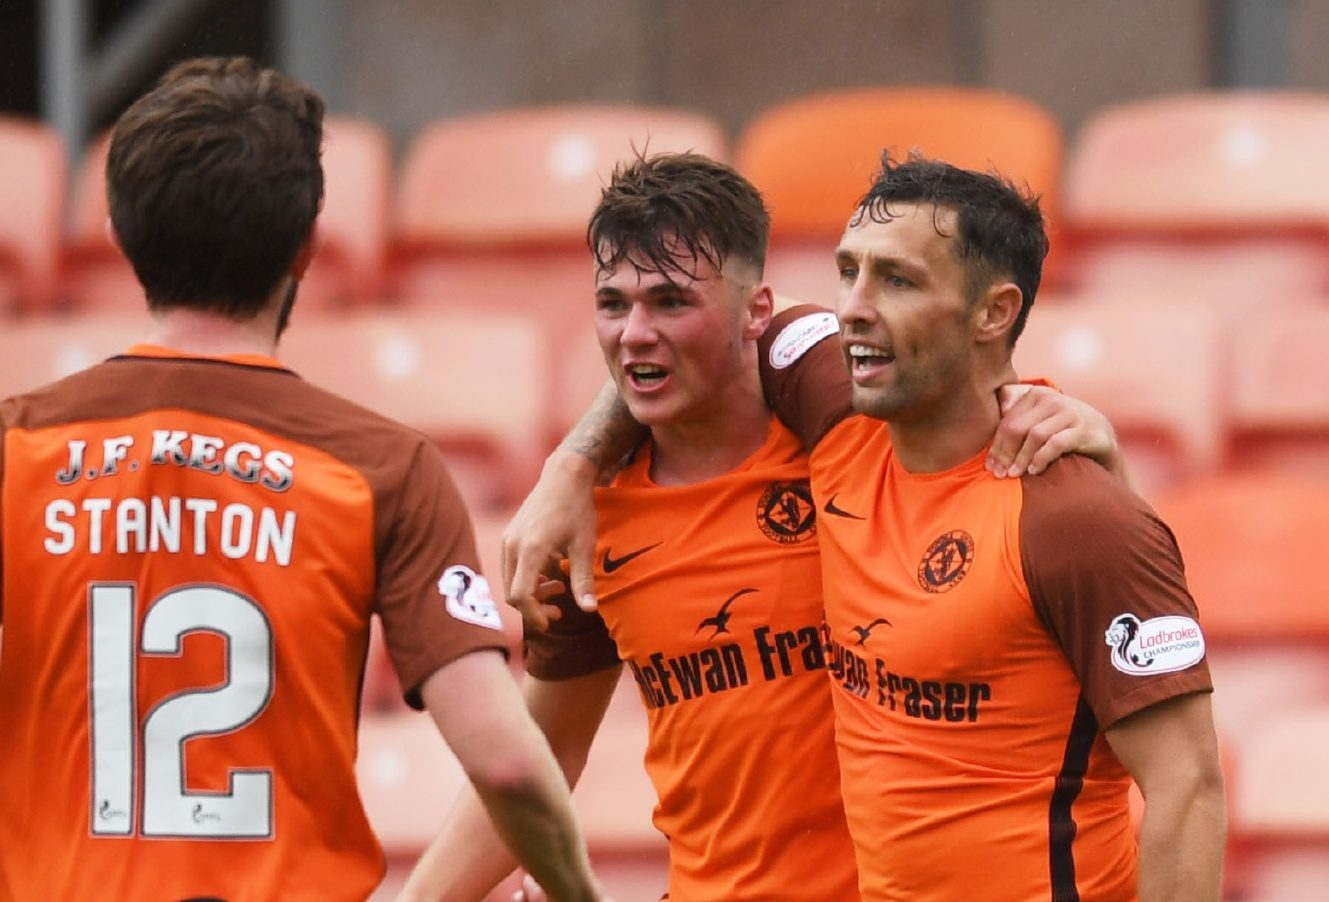 Scott McDonald (right) is congratulated after making it 1-0.